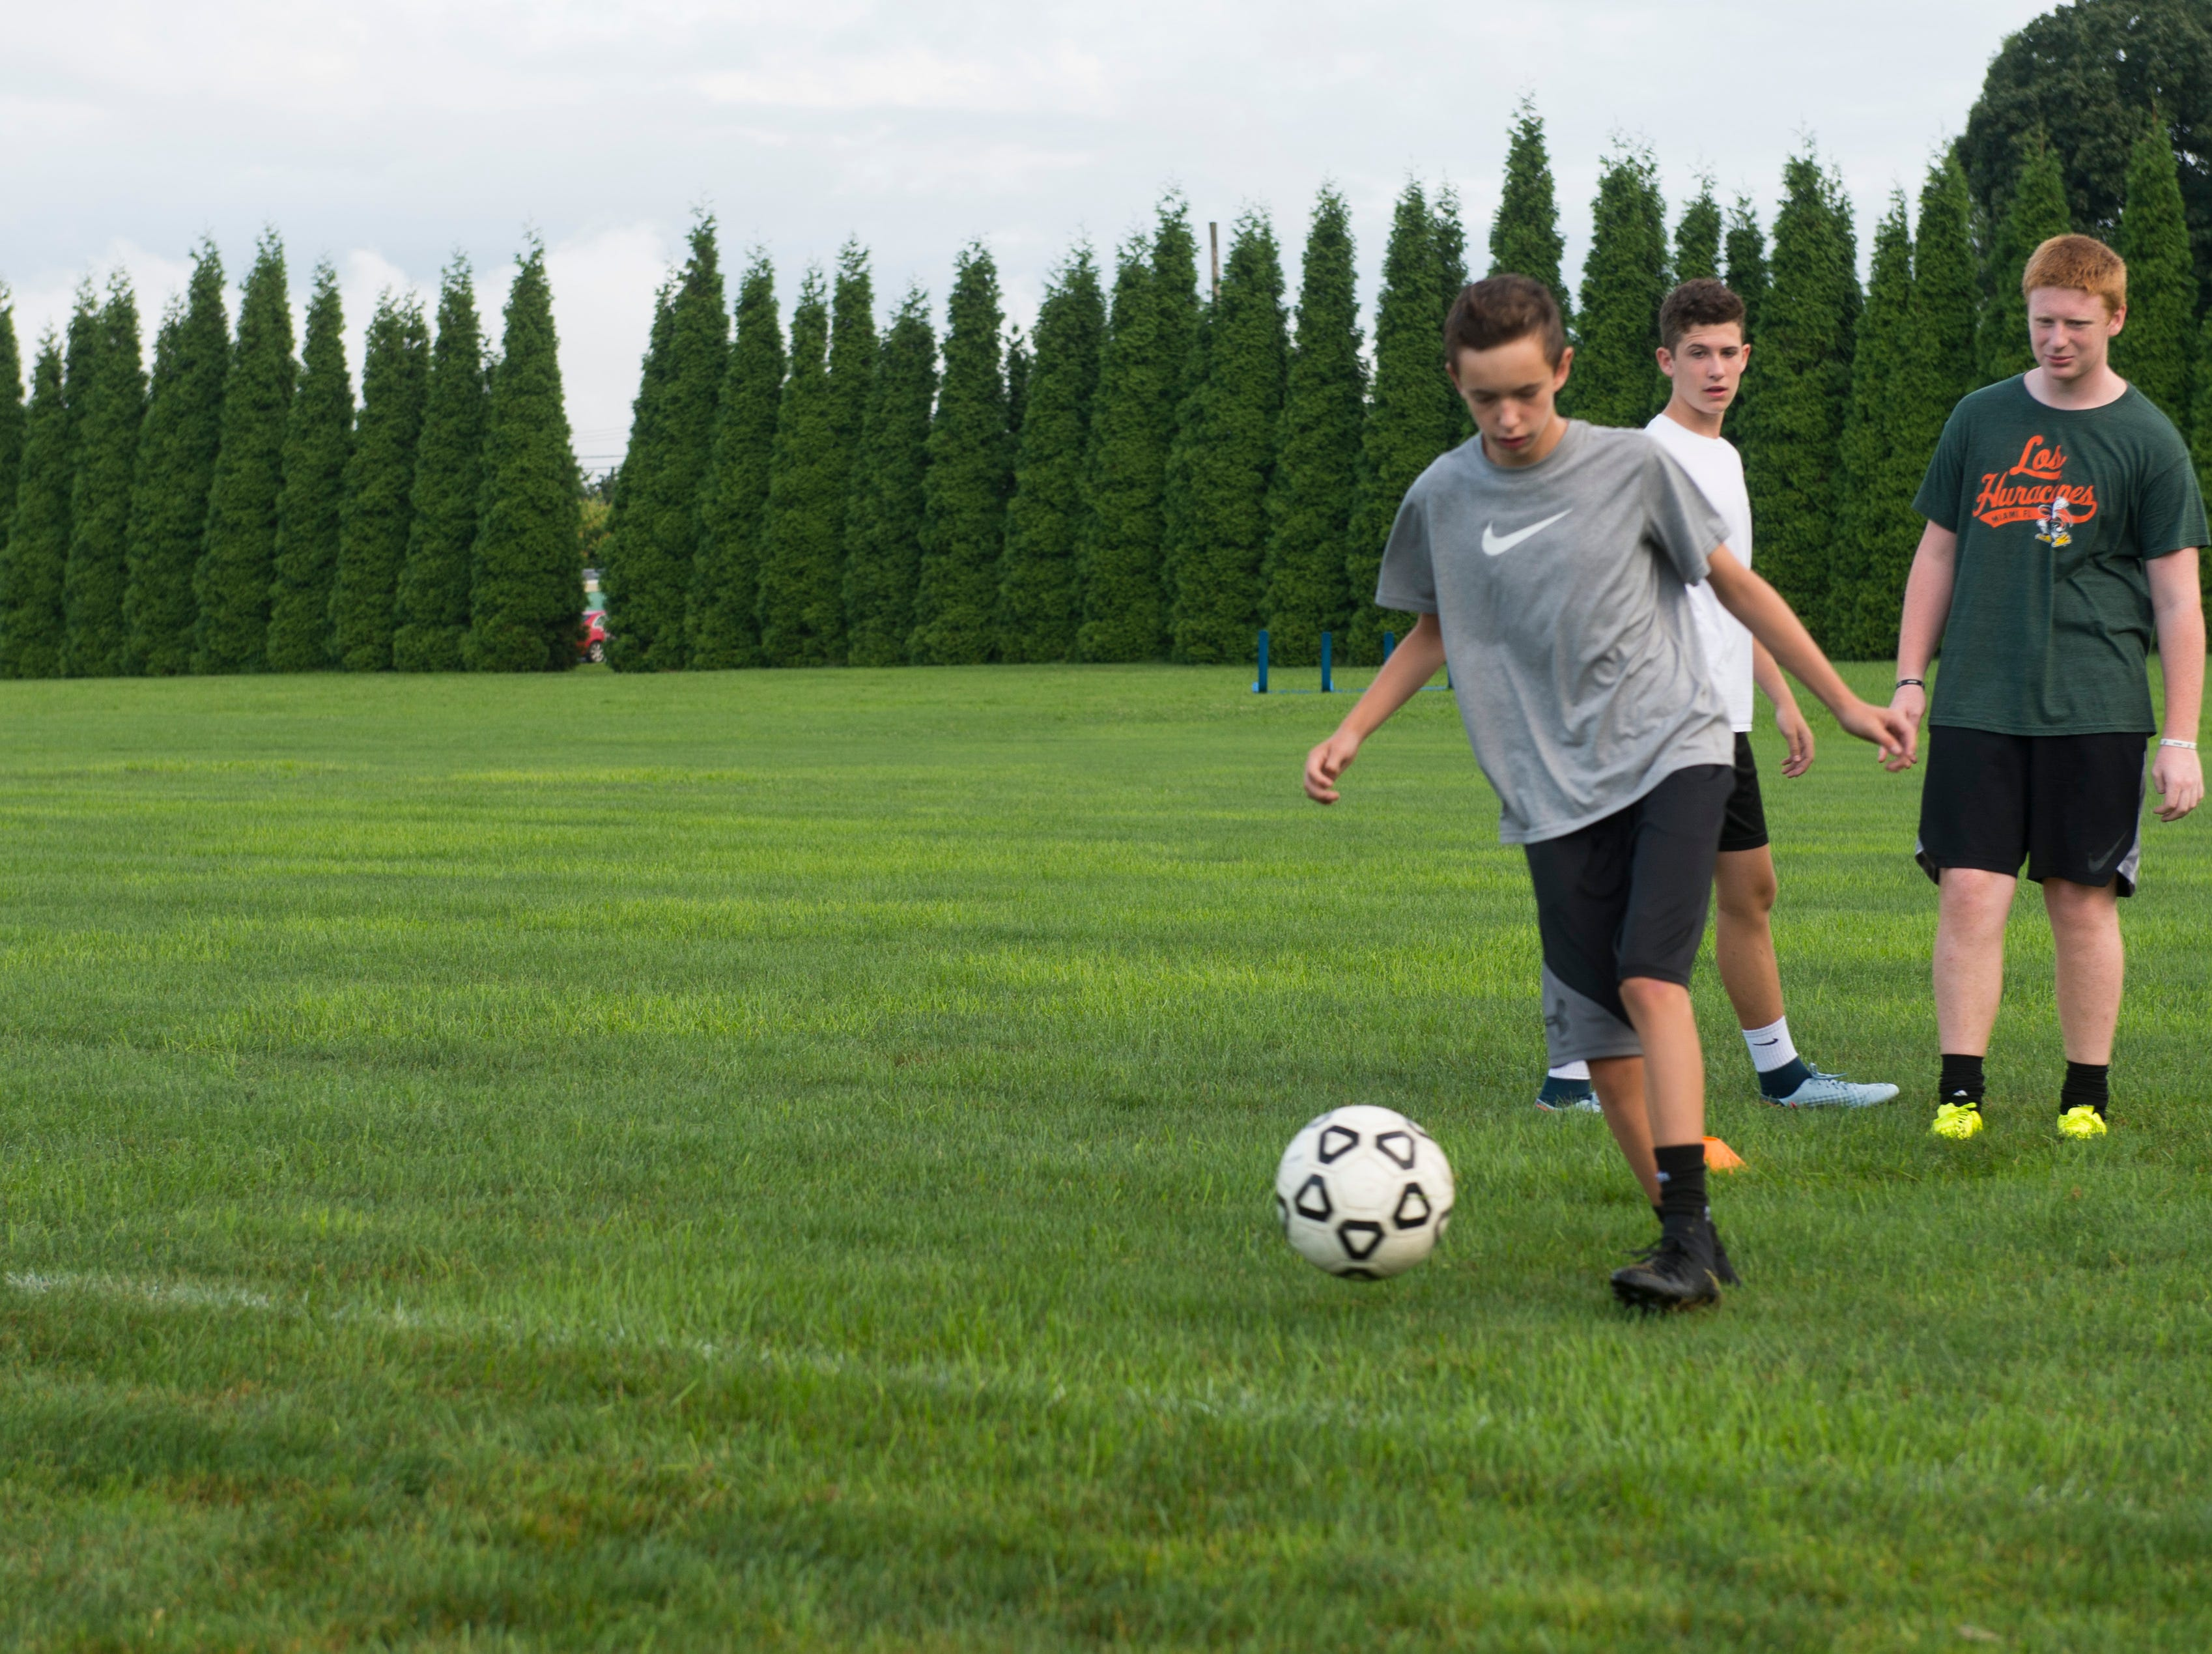 York Catholic boys' soccer has its first practice in the 2018 season on August 13, 2018.